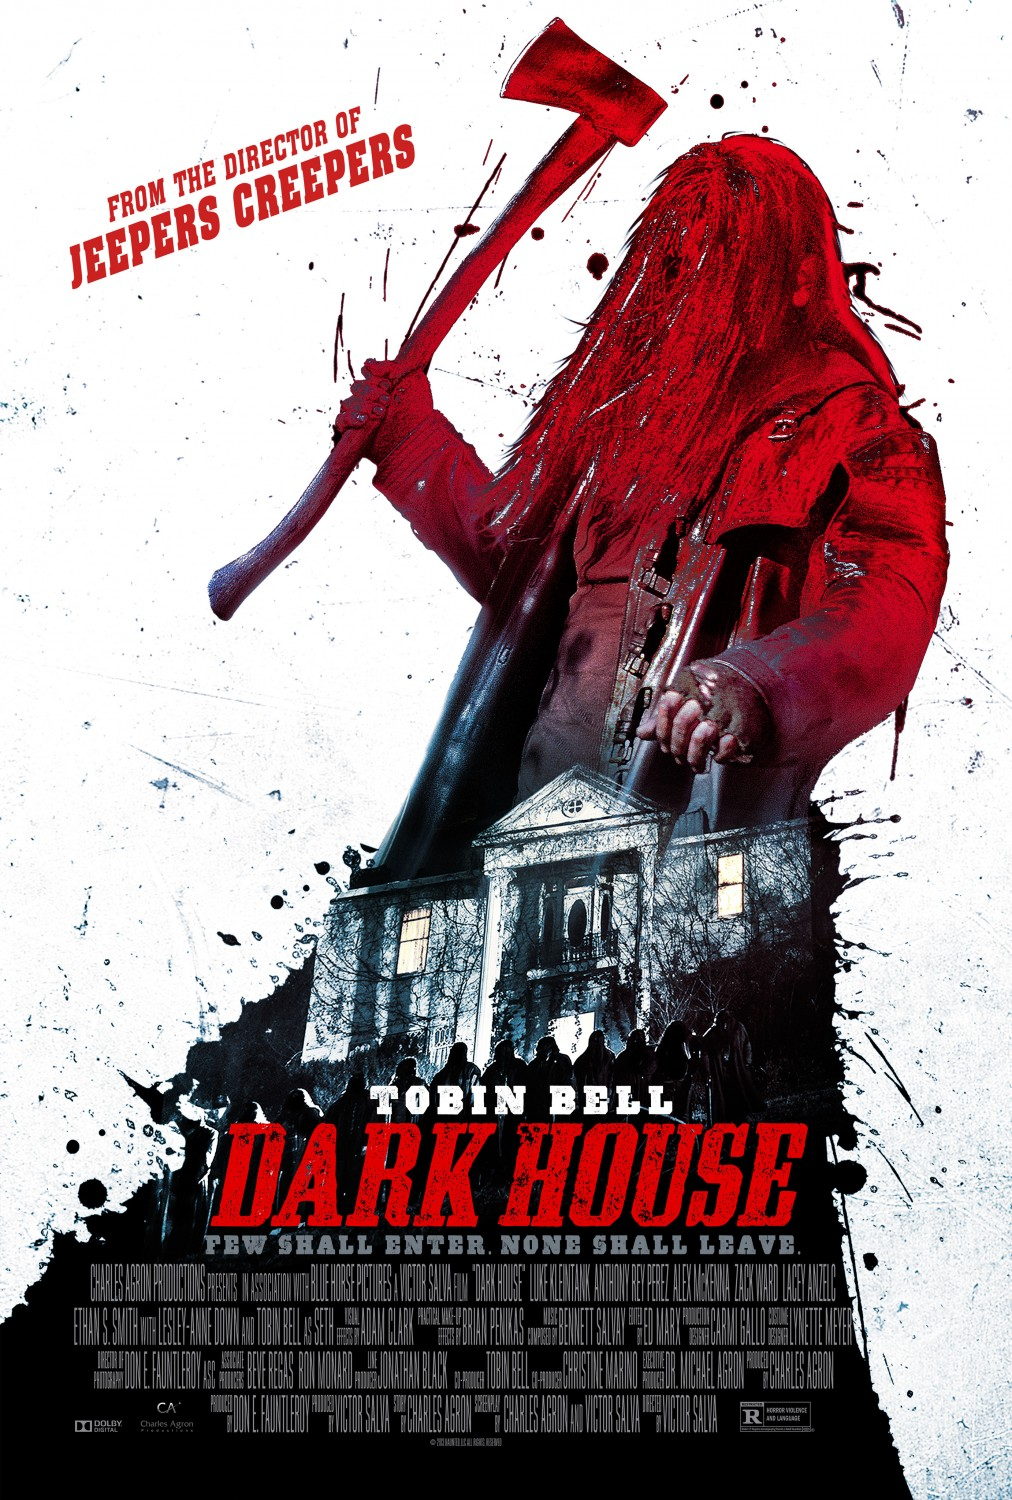 Extra Large Movie Poster Image for Dark House